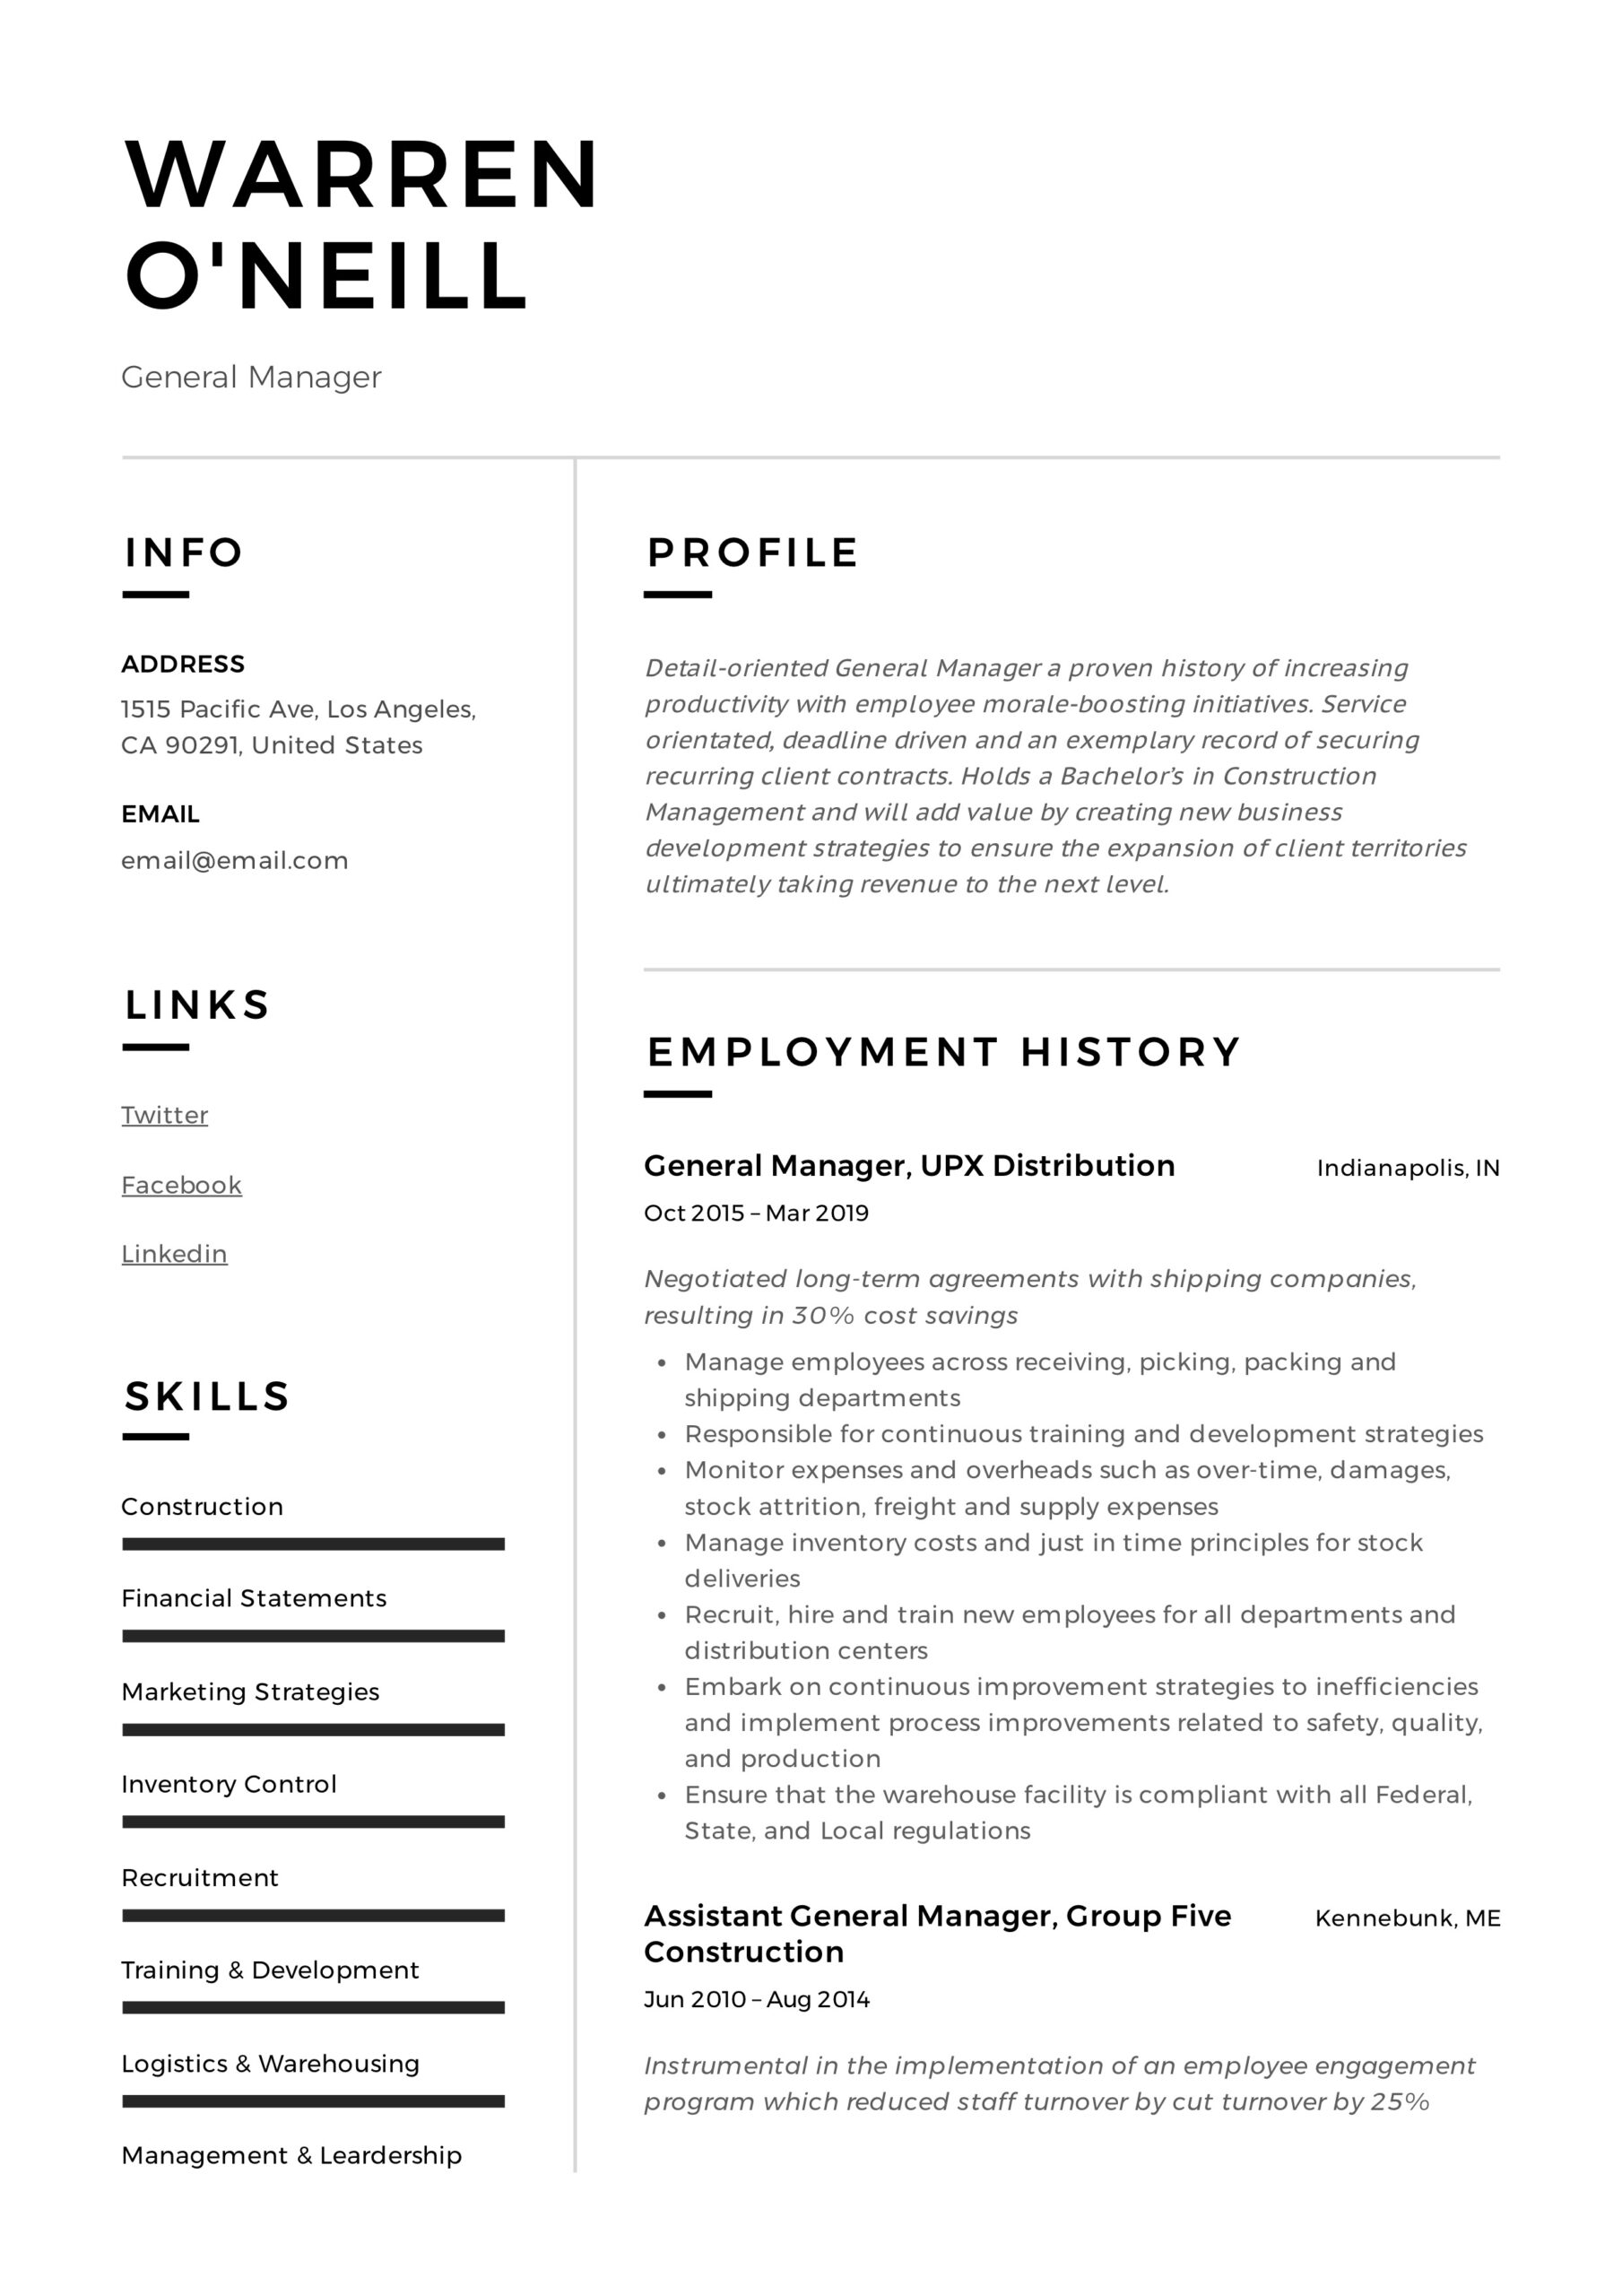 general manager resume writing guide examples pdf corporate relationship sample neill Resume Corporate Relationship Manager Resume Sample